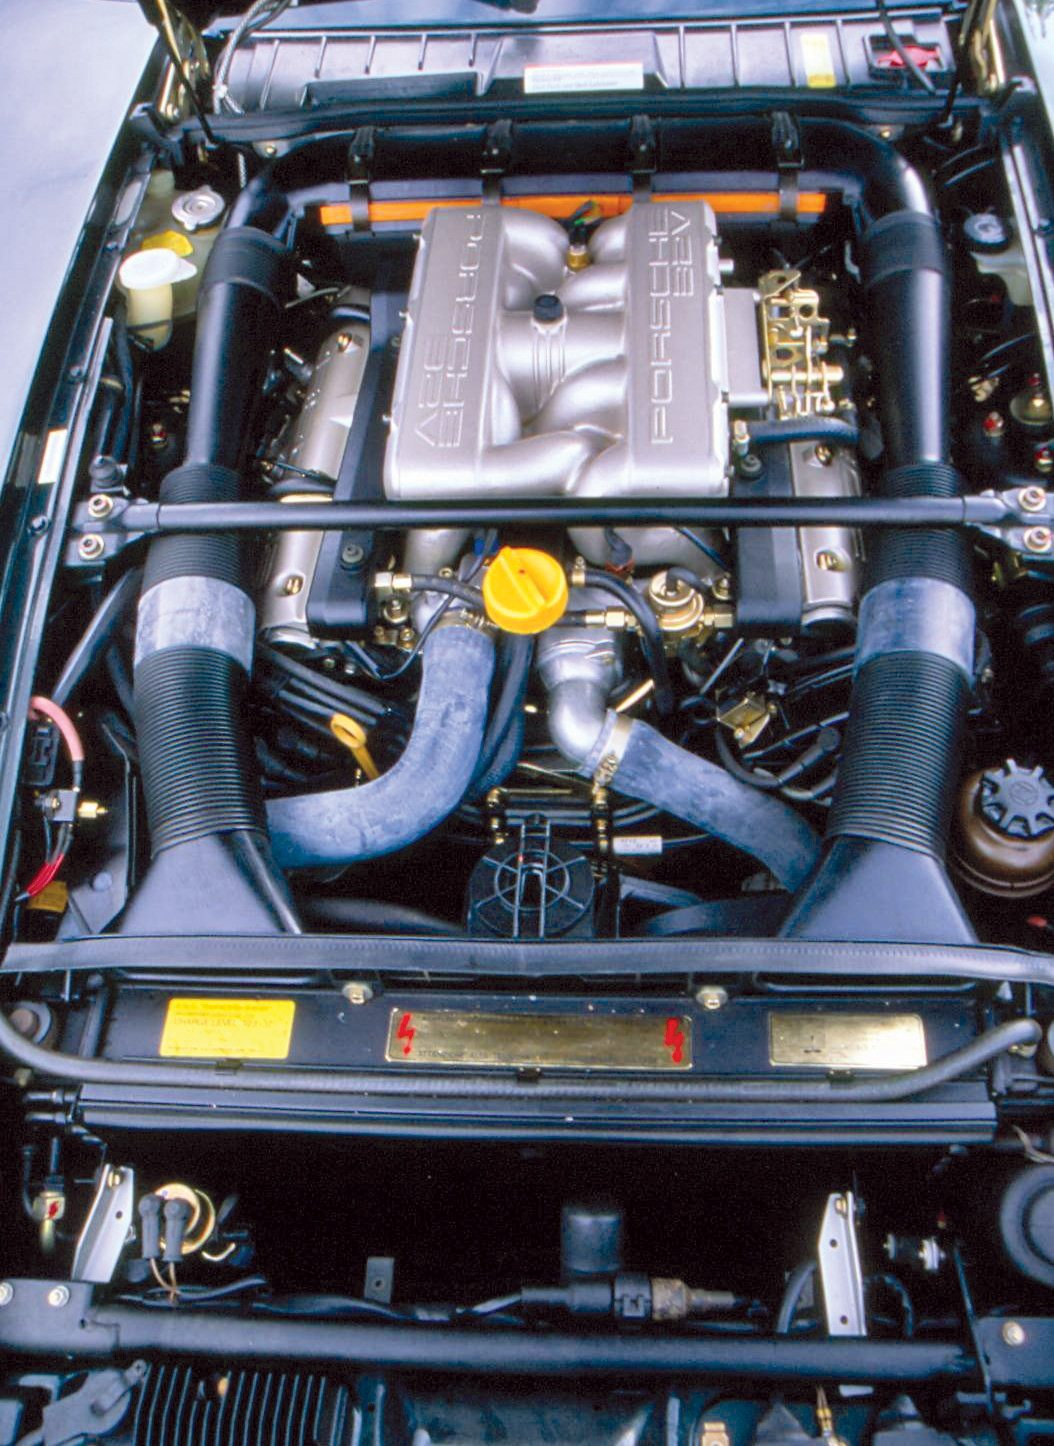 The Front Engine Porsches Heacock Classic Insurance Parts Diagram Ford 5 4l V8 In 1985 A 50 Liter 32 Valve Double Overhead Cam With 288 Horsepower Replaced Original